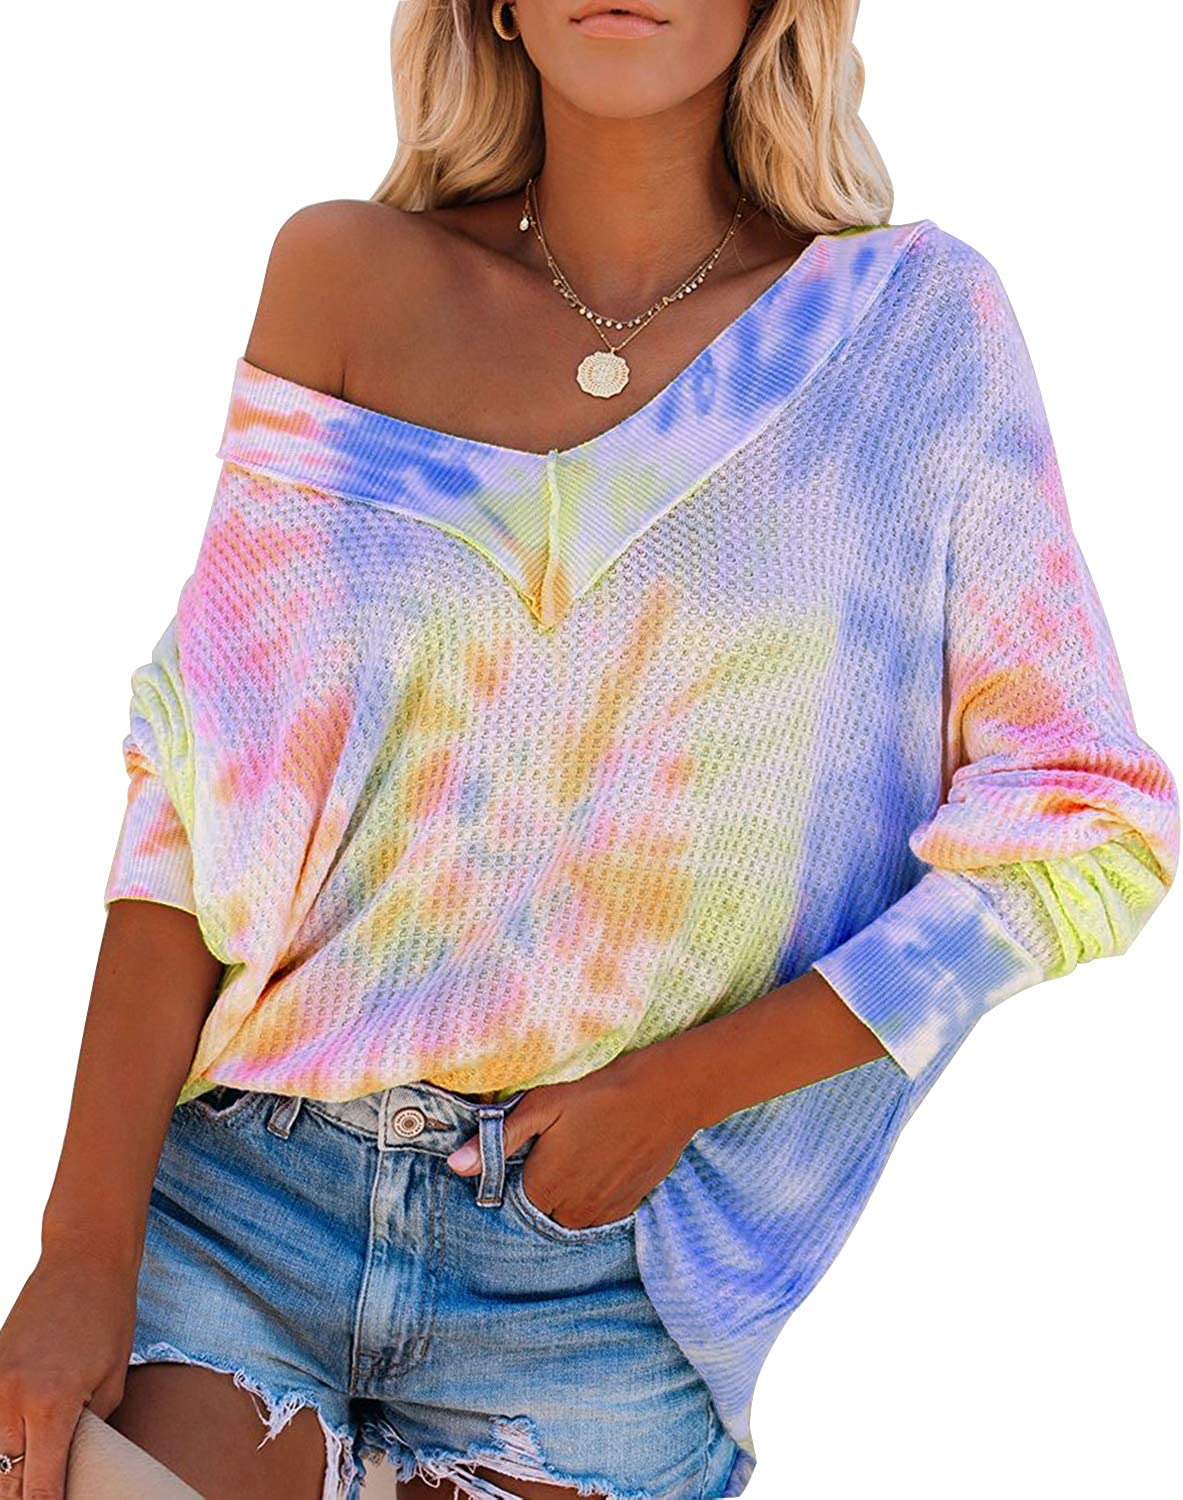 Nirovien Womens Tie Dye Off Shoulder Pullover Tops V Neck Batwing Sleeve Waffle Knit Sweater Tops